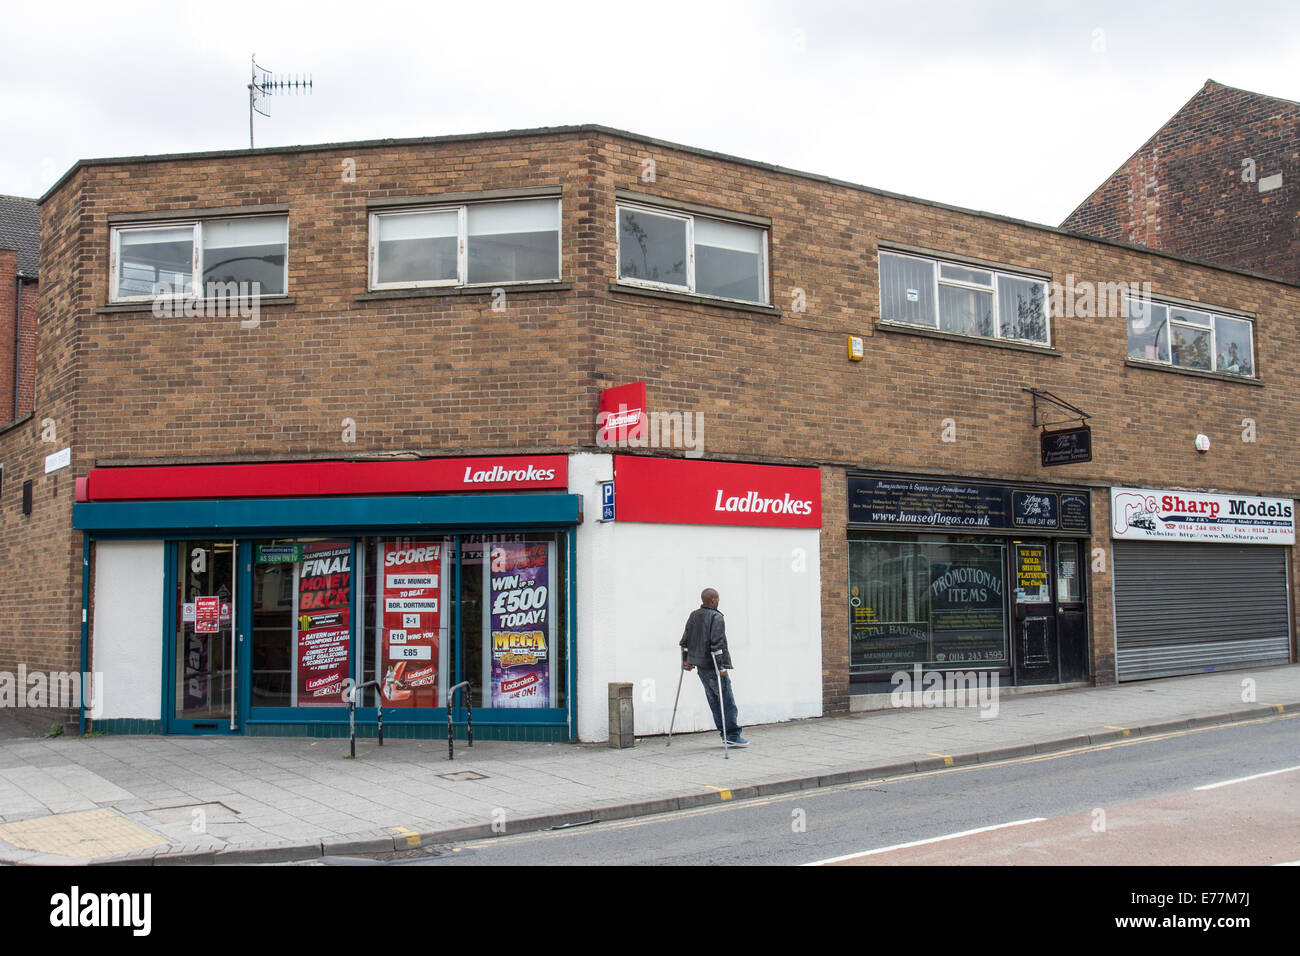 Single manning in betting shops